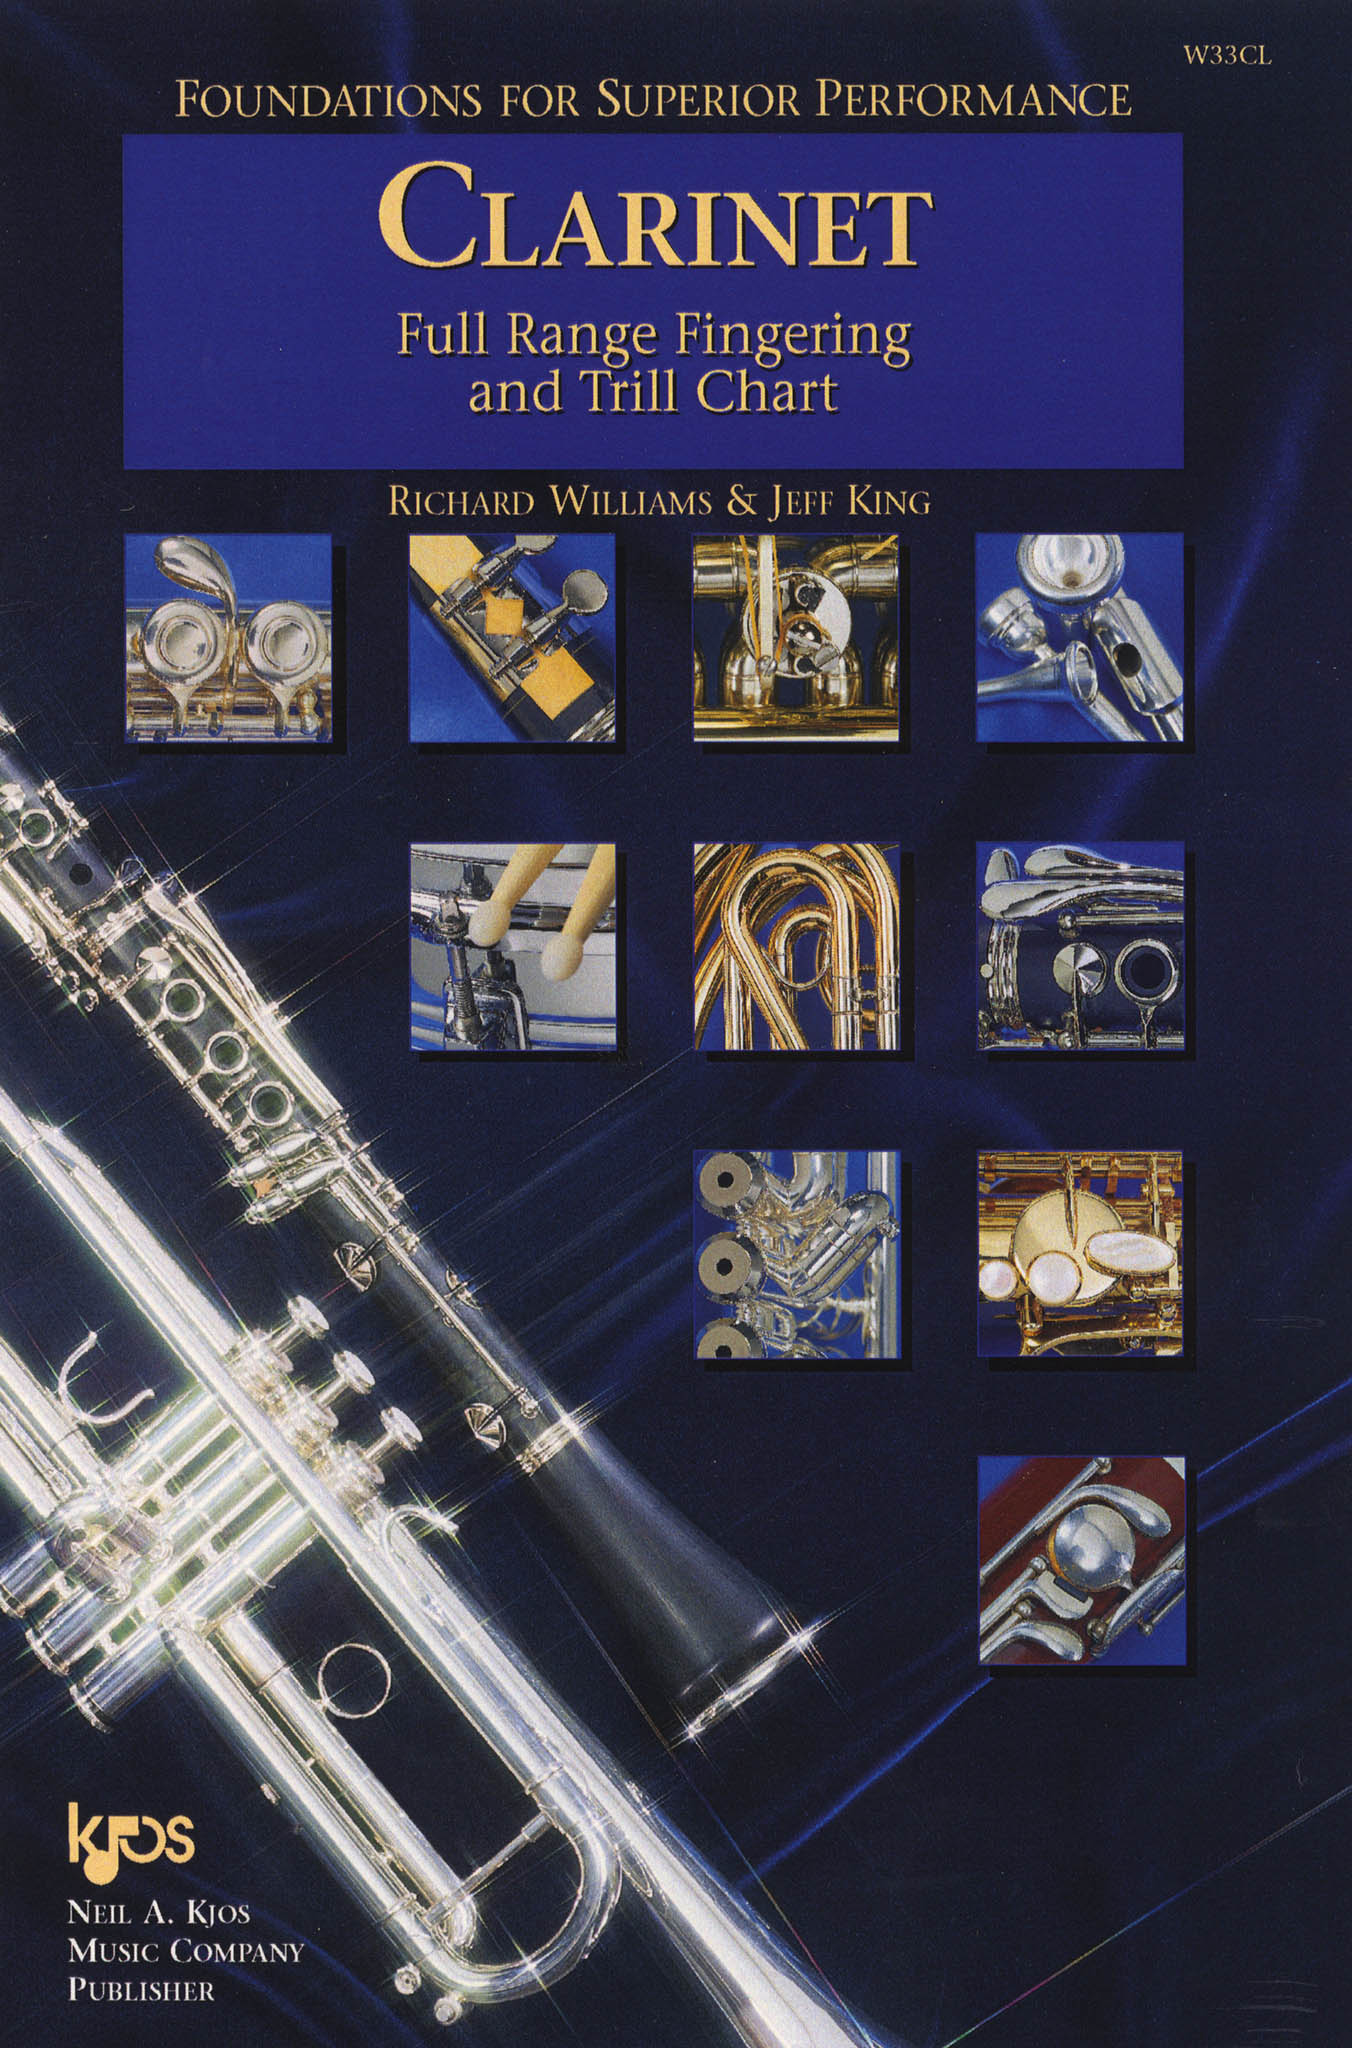 Clarinet Full Range Fingering & Trill Chart Cover